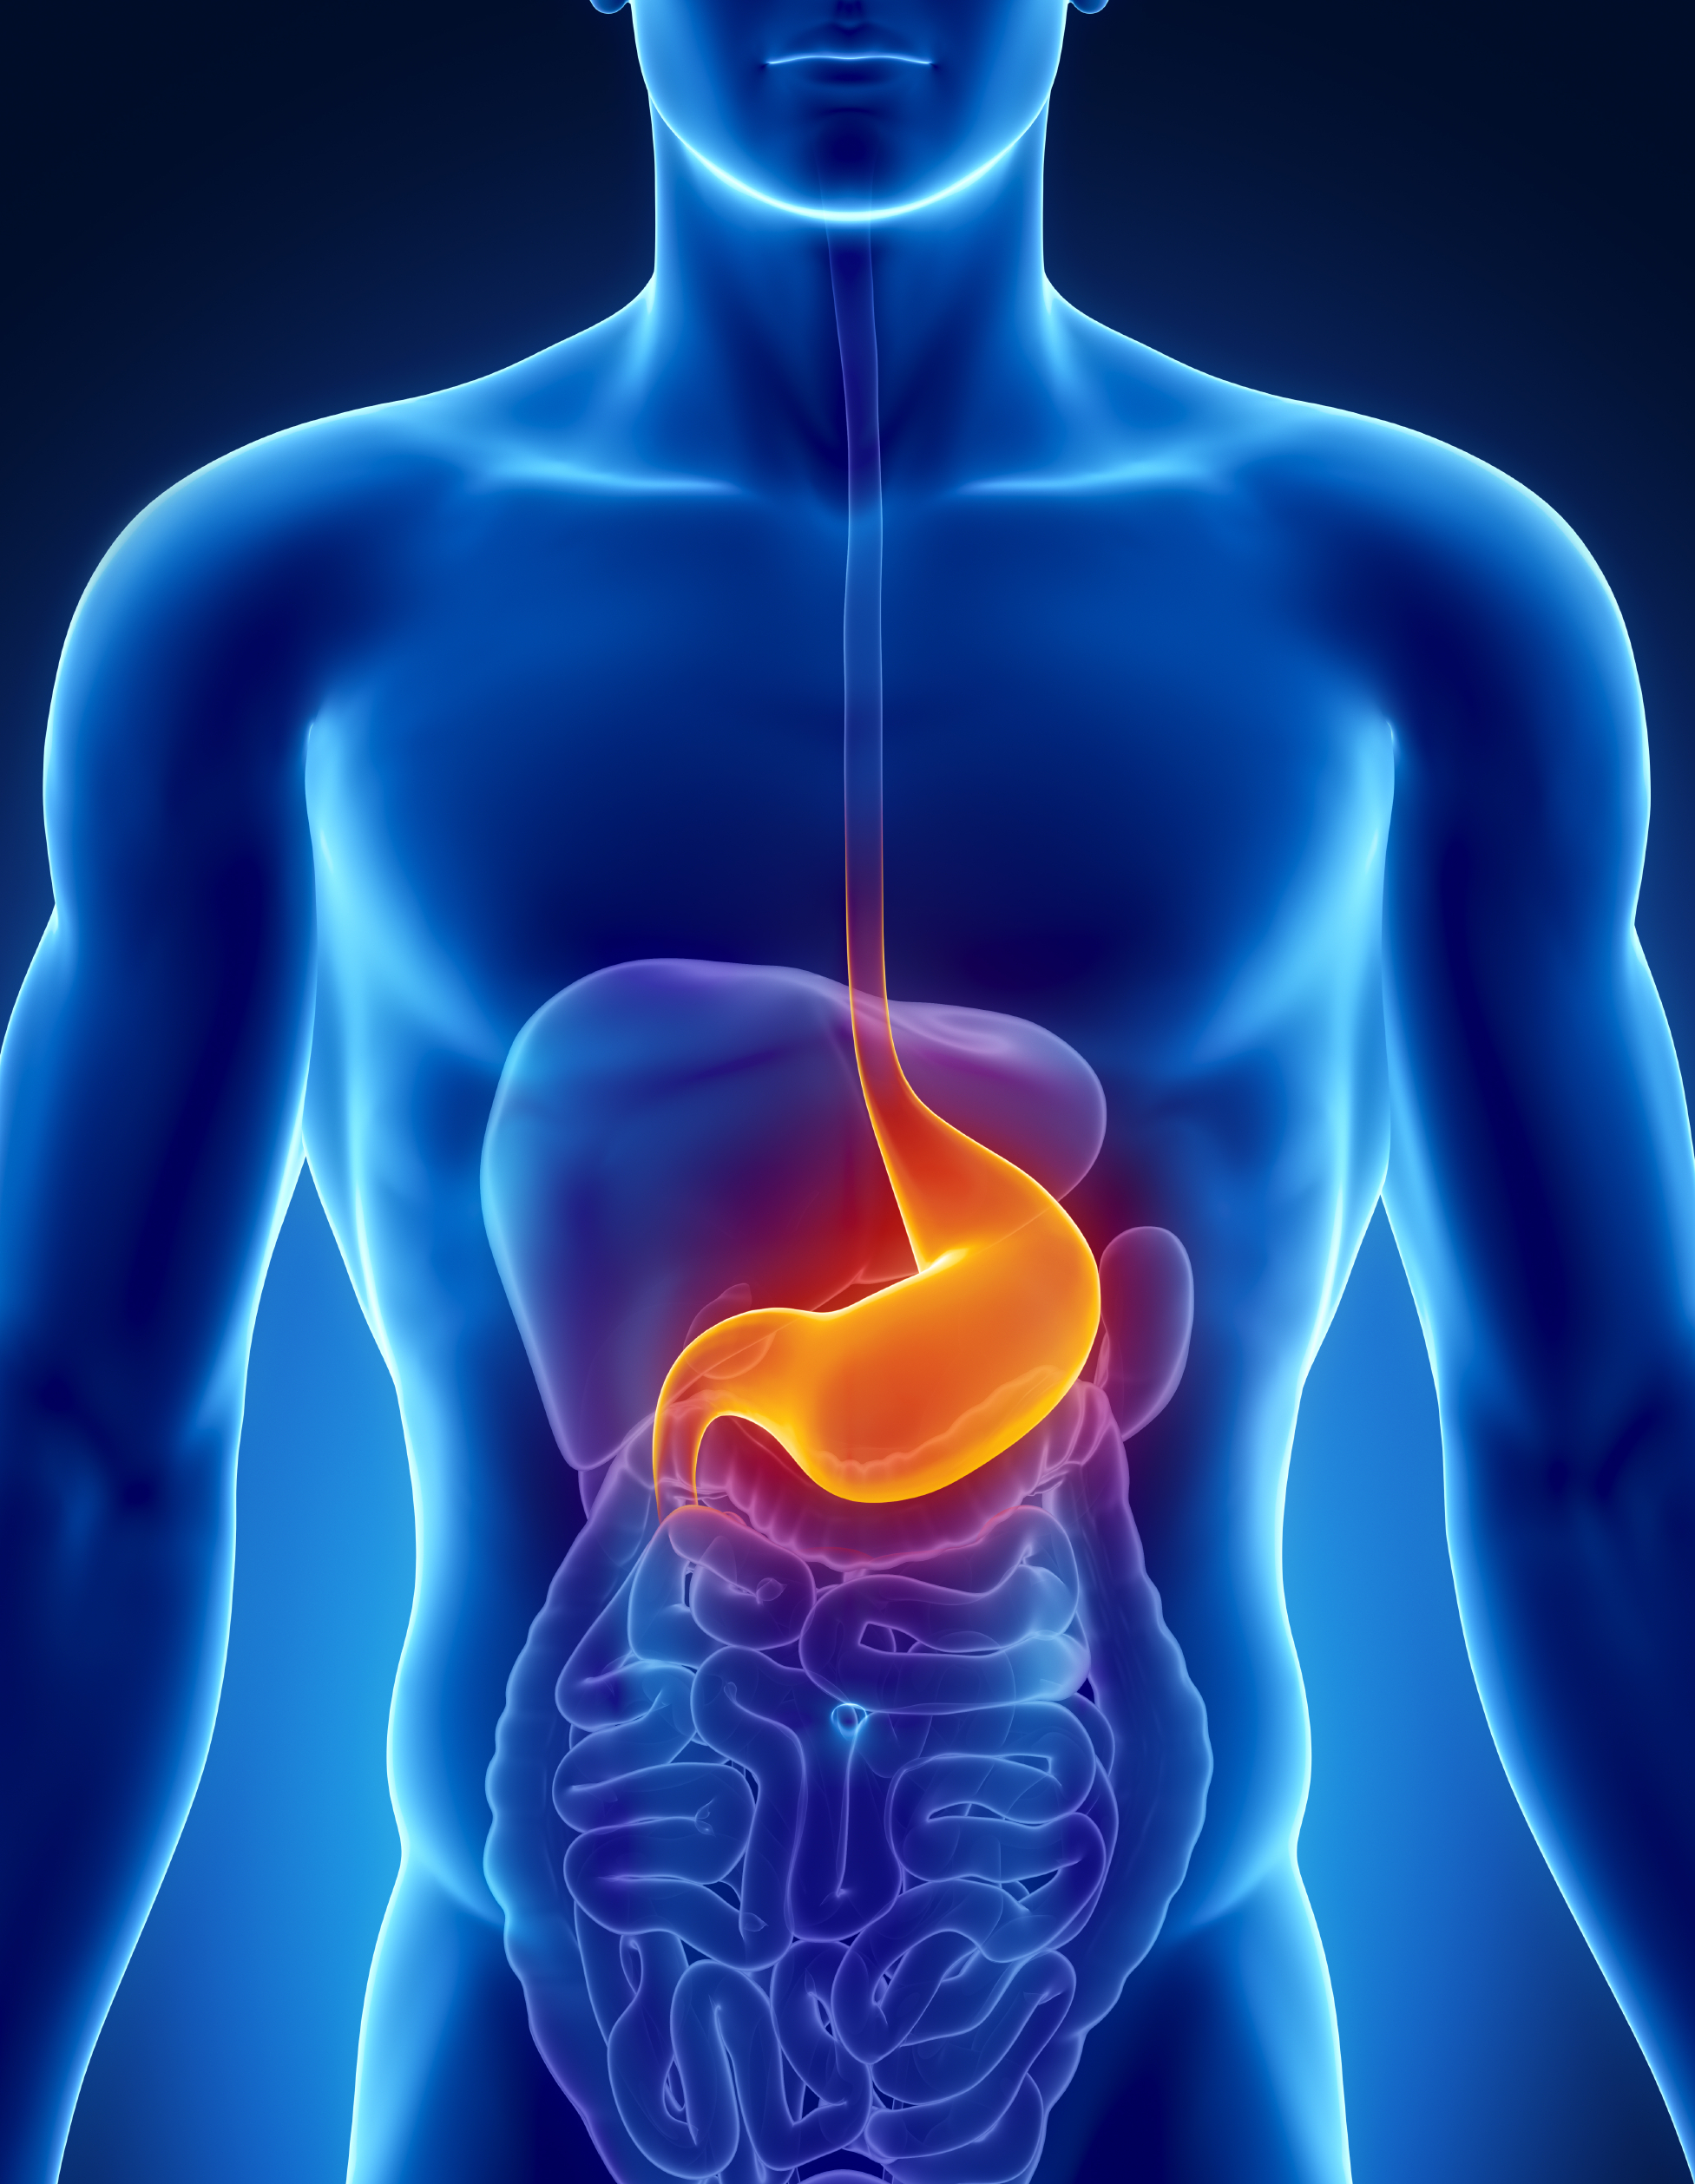 MANAGE YOUR ACID REFLUX WITHOUT MEDICATIONS - ProBiotic DIGEST